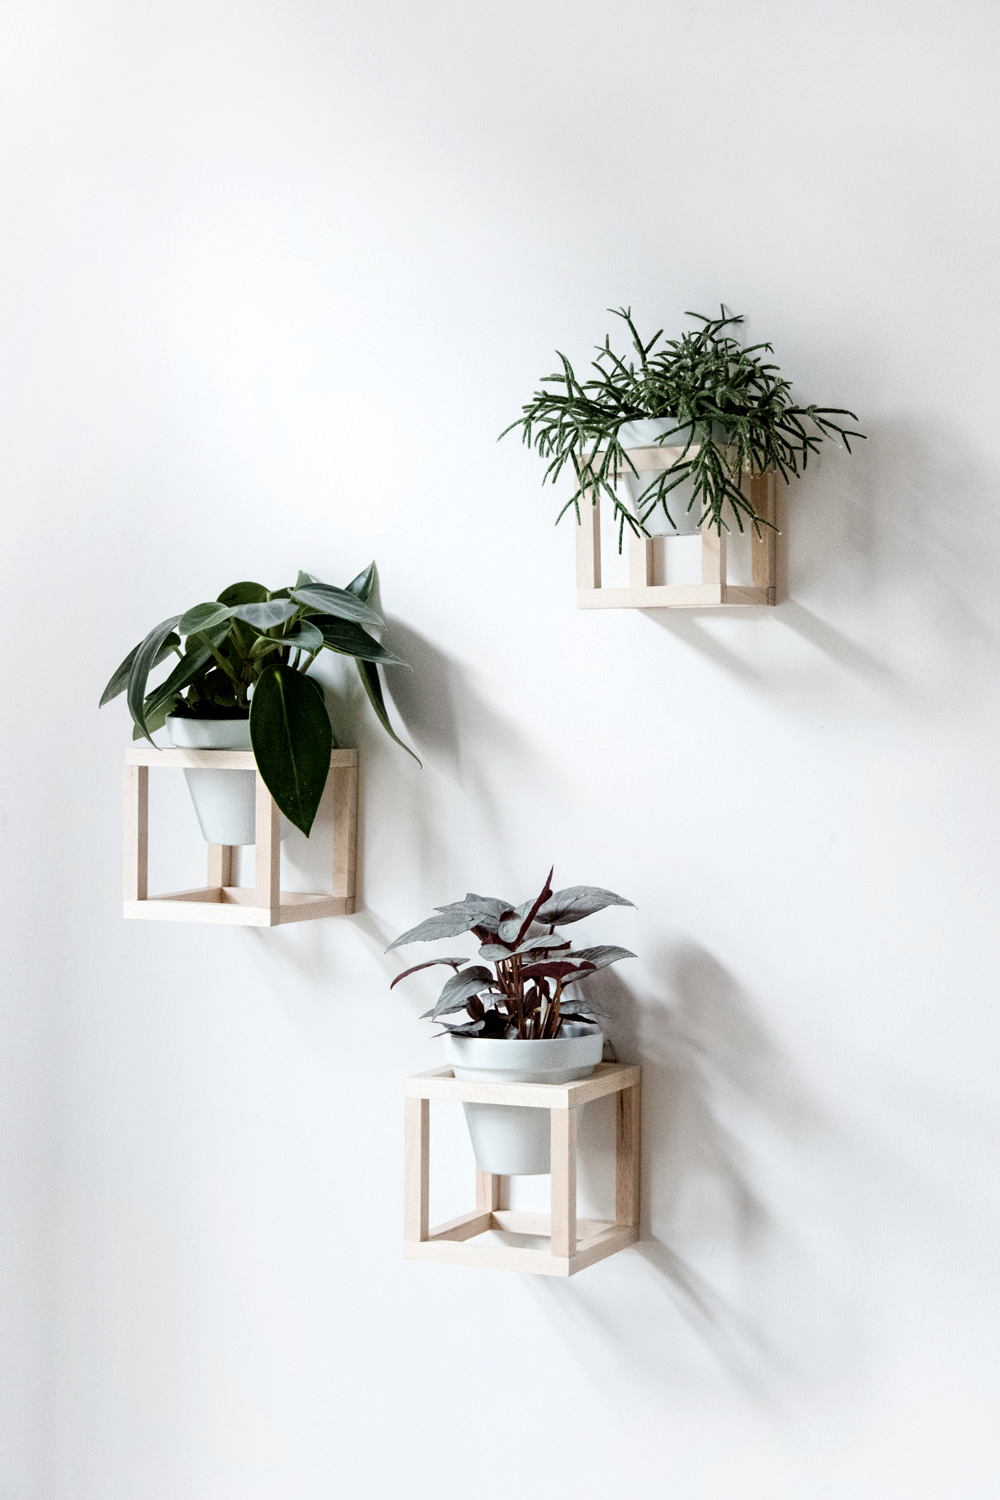 Mother's Day Gift Ideas Homemade Gifts presents mothering sunday the handy mano manomano off thewall hanging plants